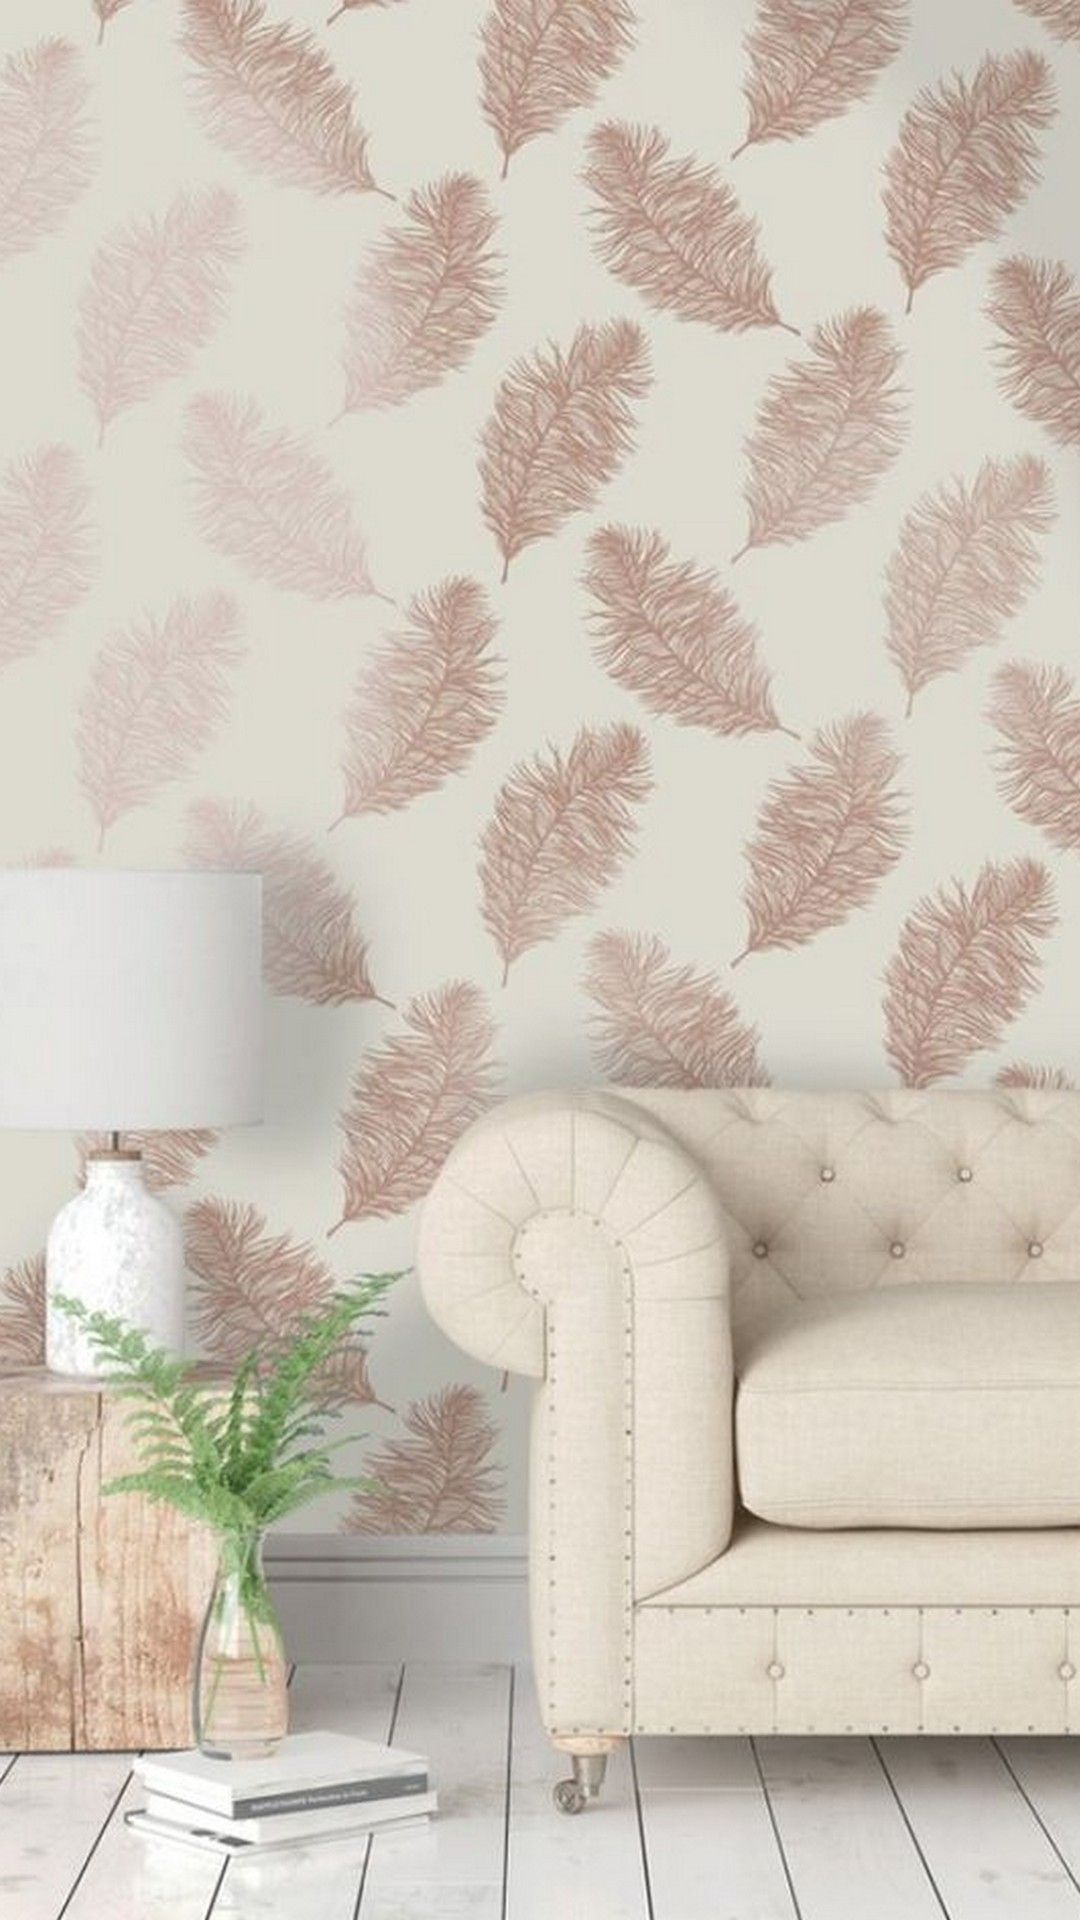 Rose Gold Themes Wallpaper For Iphone Best Iphone Wallpaper Wallpaper Living Room Pink Living Room Gold Wallpaper Bedroom